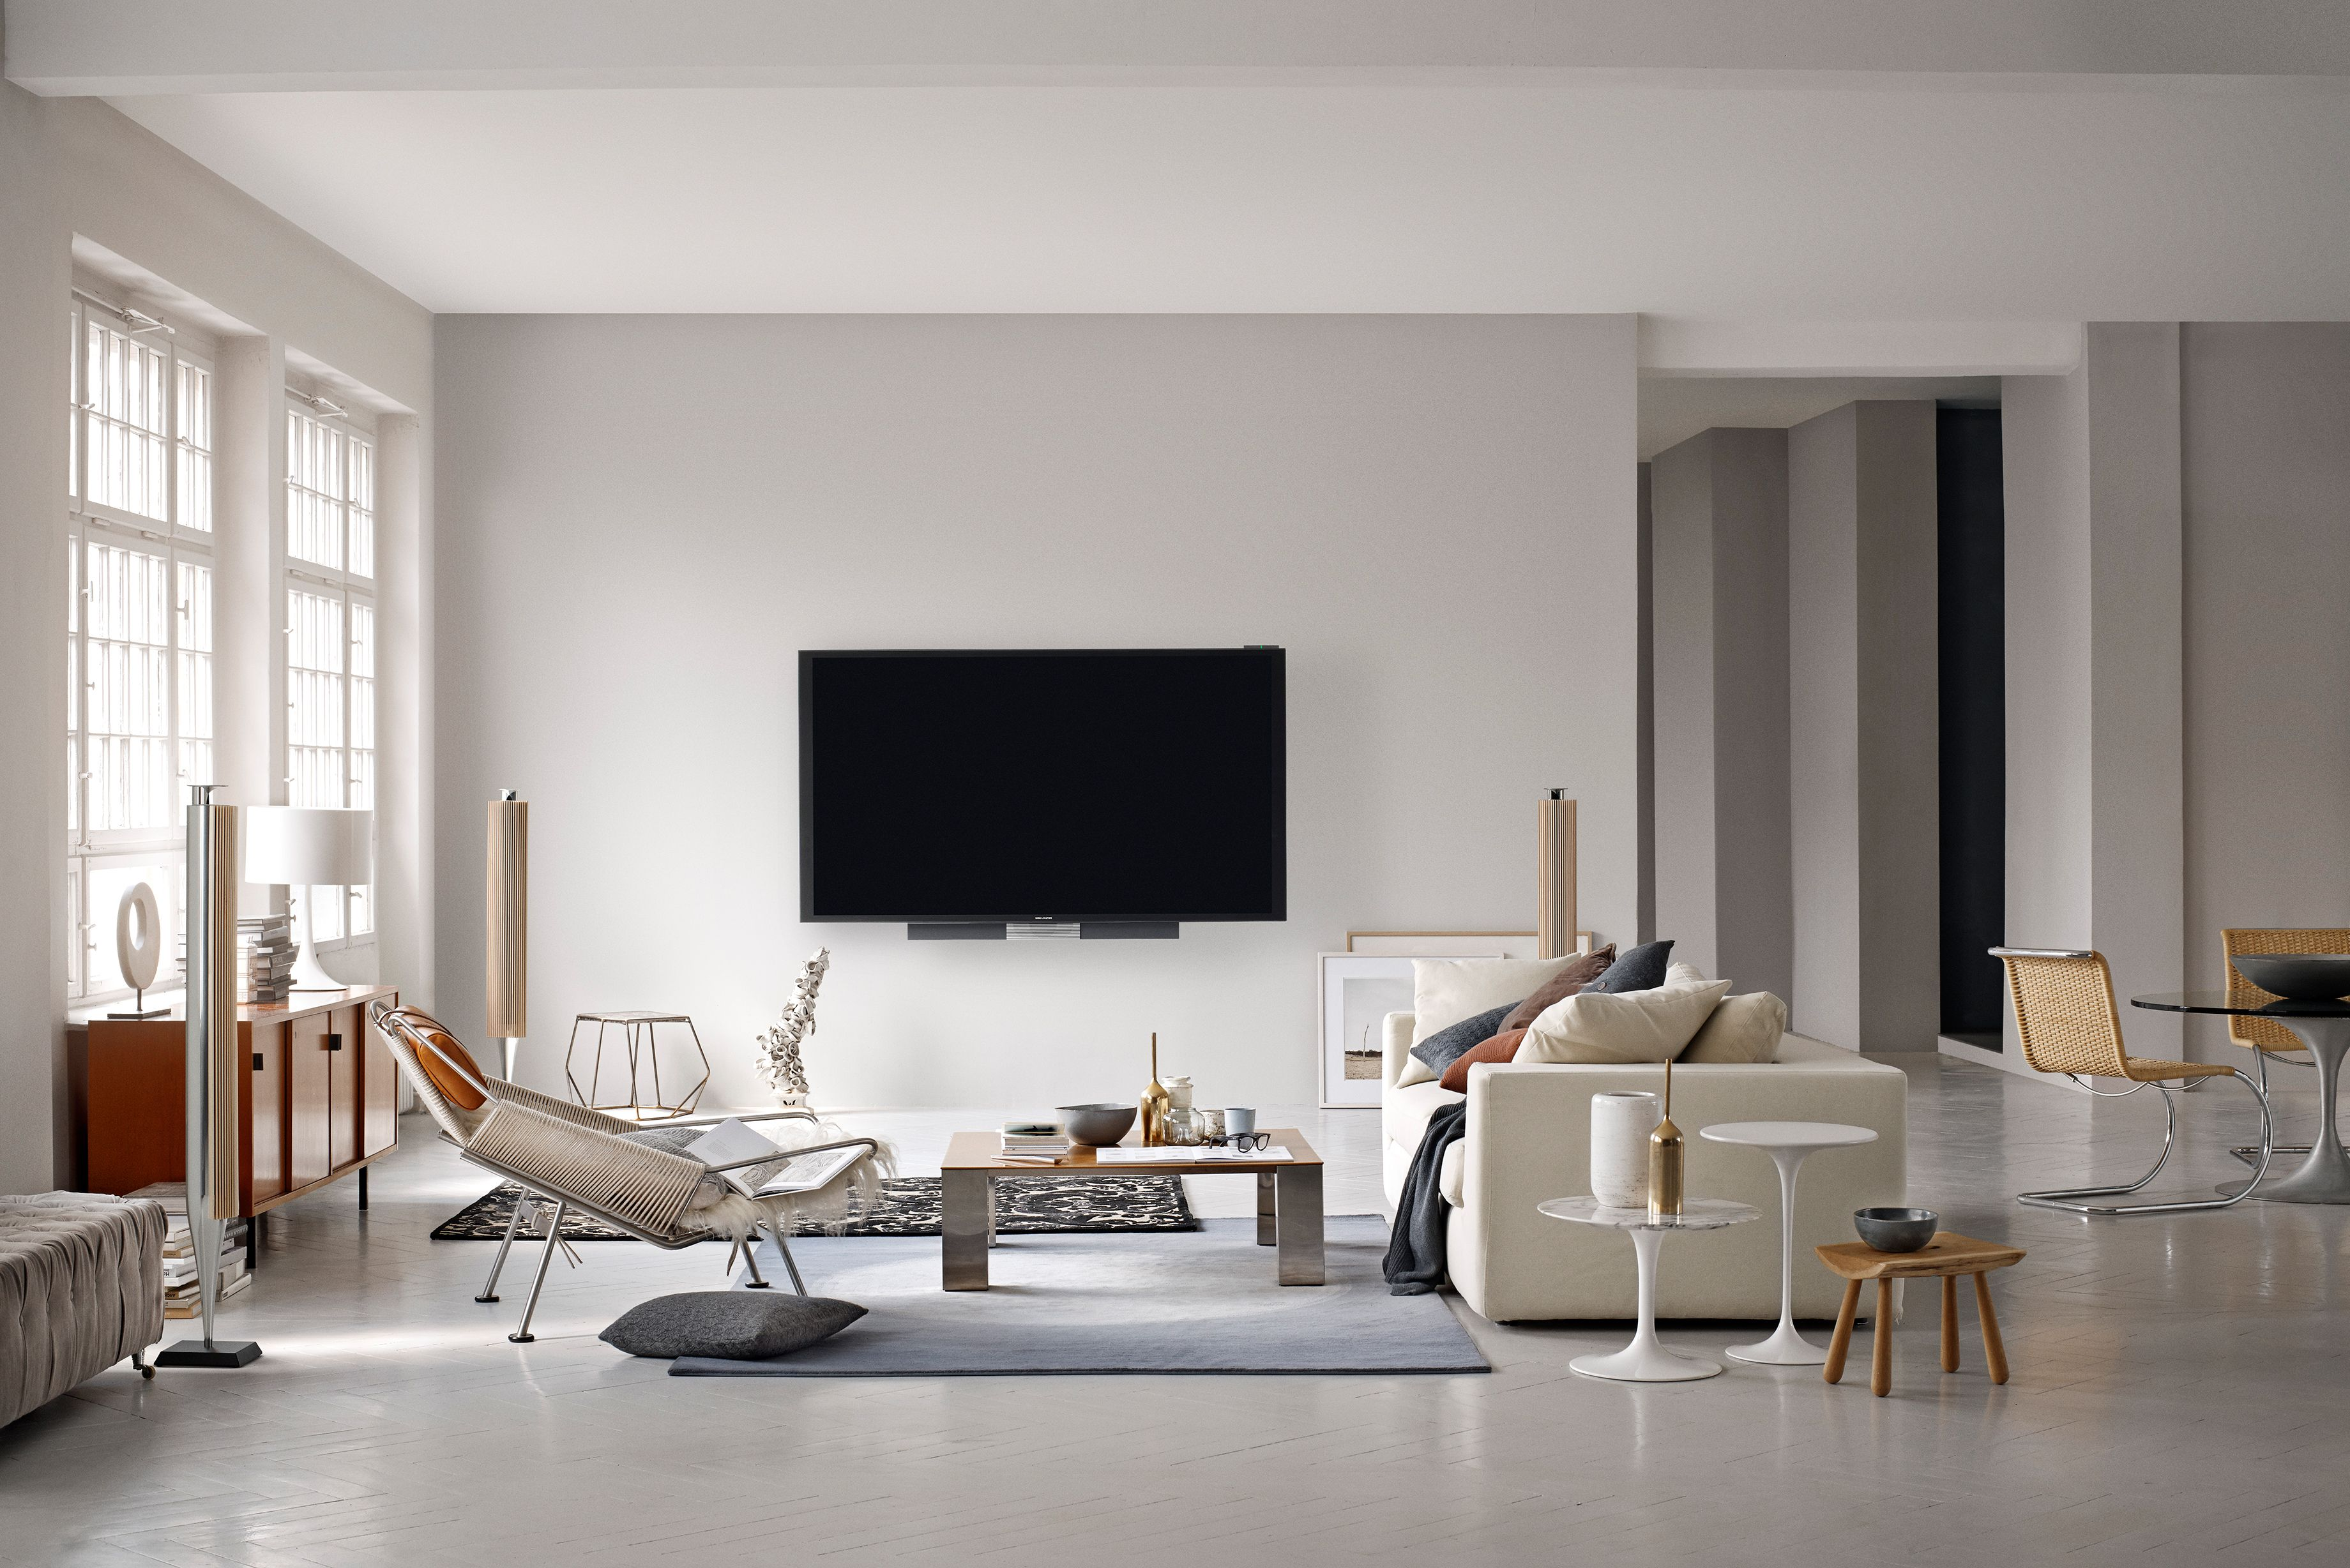 Explore Bang And Olufsen, Home Design, And More!